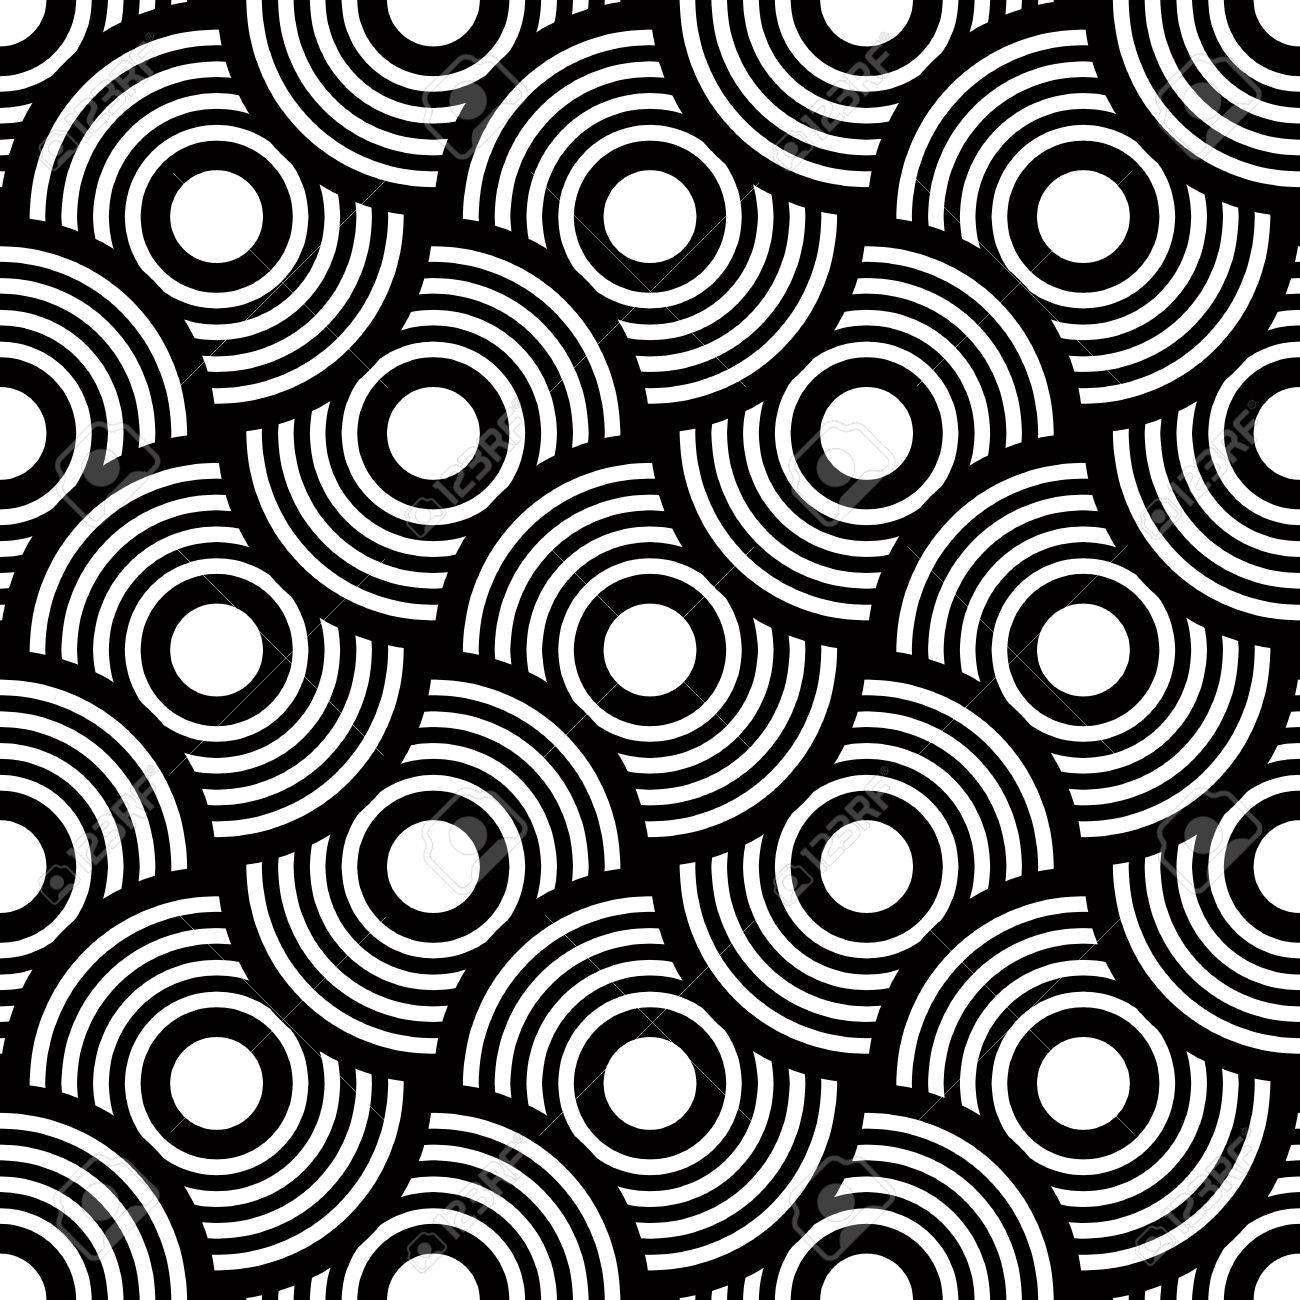 Seamless geometric pattern, simple vector black and white stripes background, accurate, editable and useful background for design or wallpaper. - 38356807